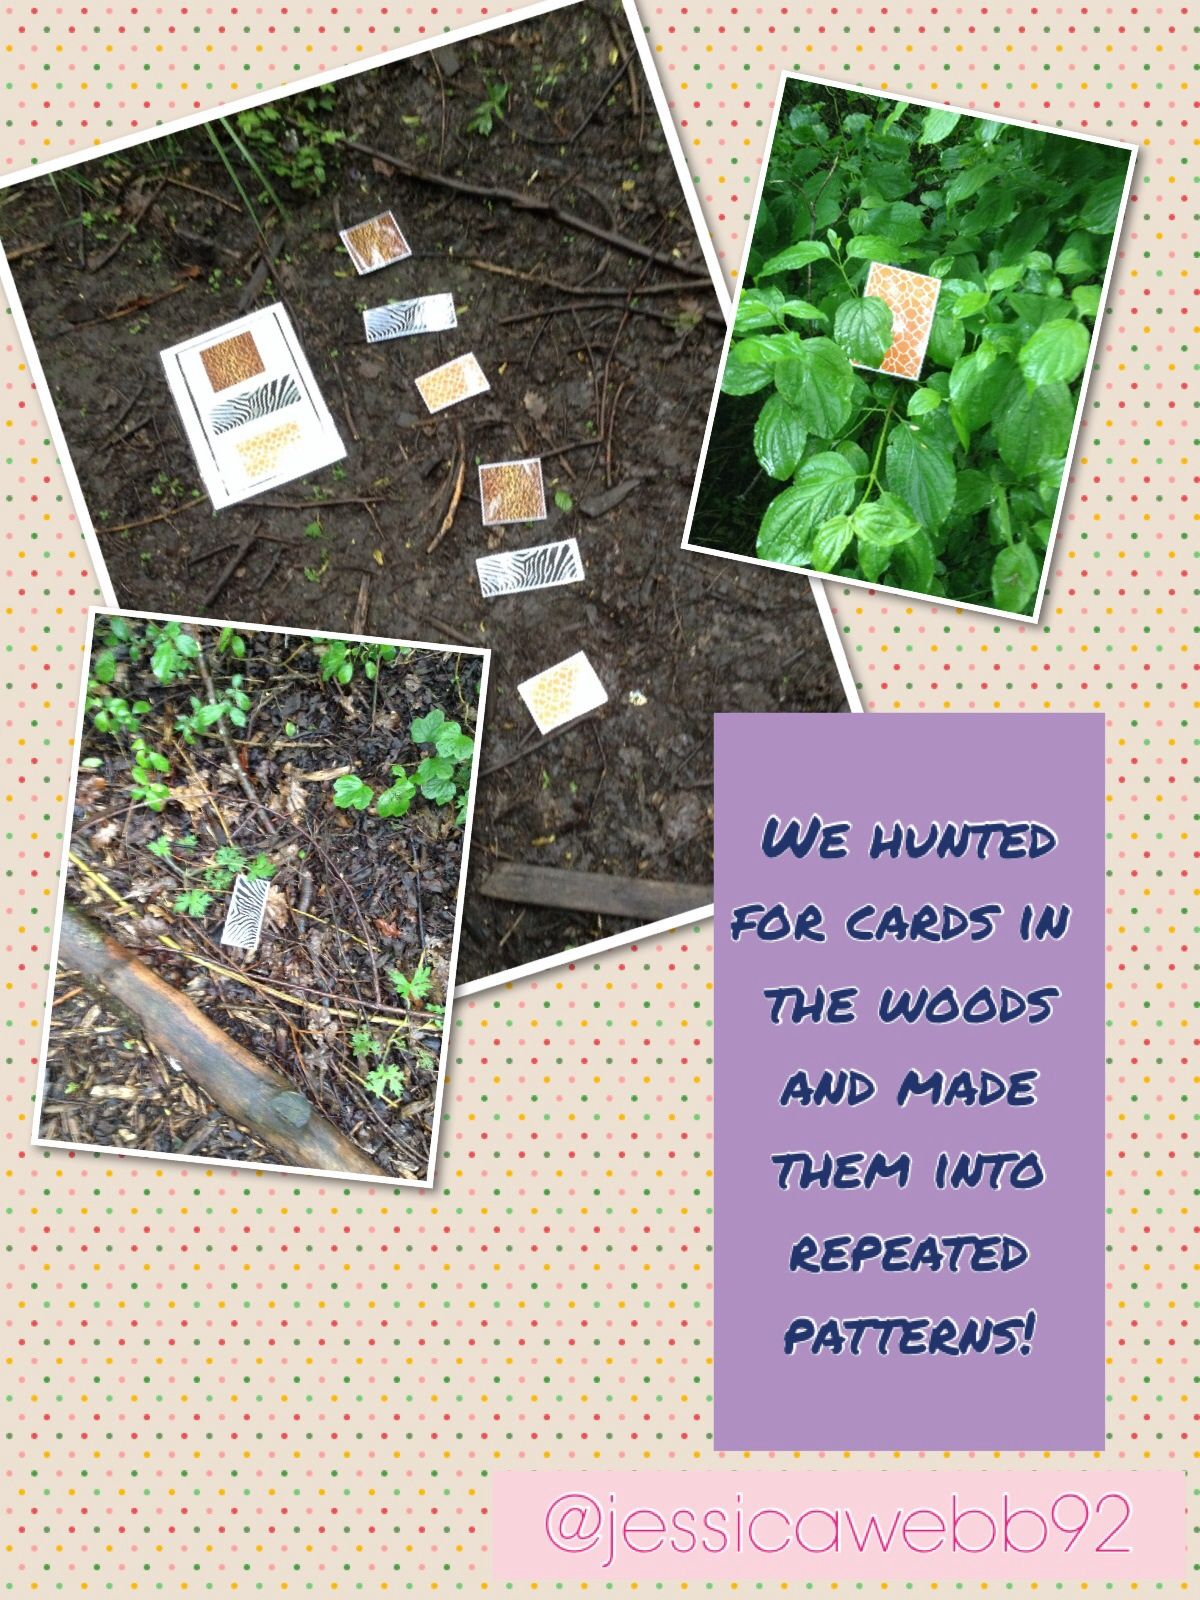 Making repeated patterns in the woods. EYFS | Eyfs, Pattern activities, Repeating  patterns